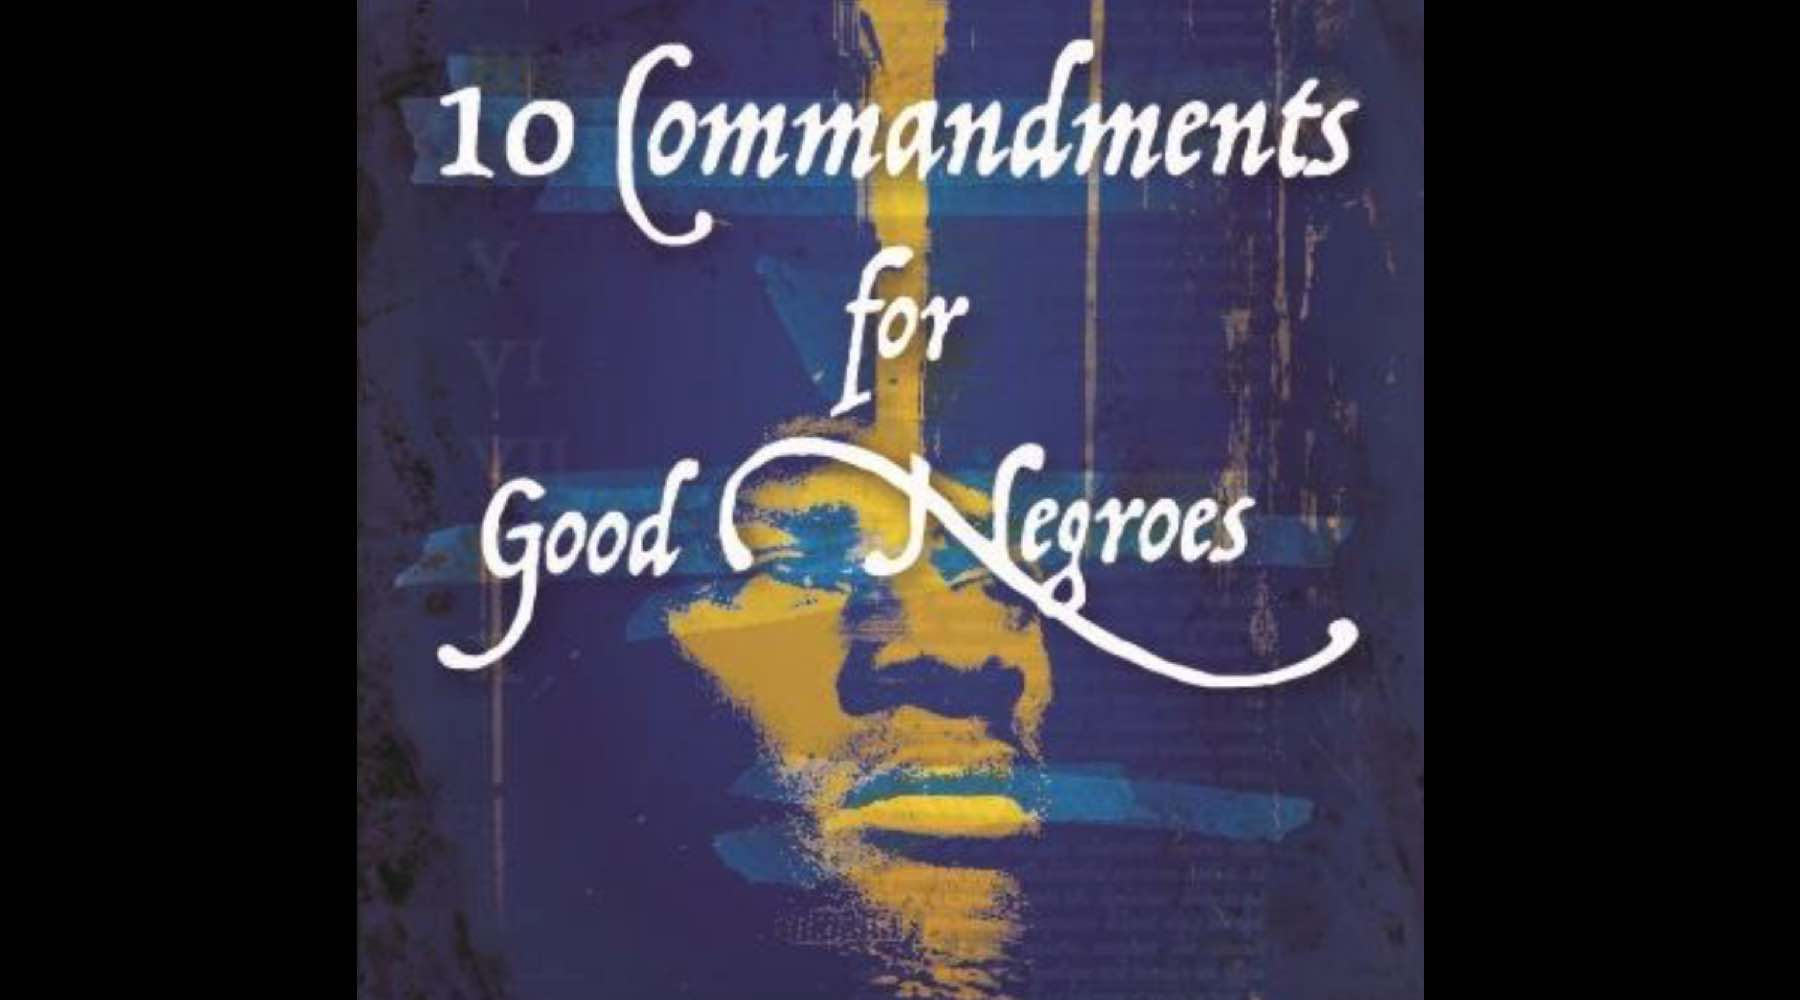 New Book Explores 'What it Means to be Black and Christian in America'